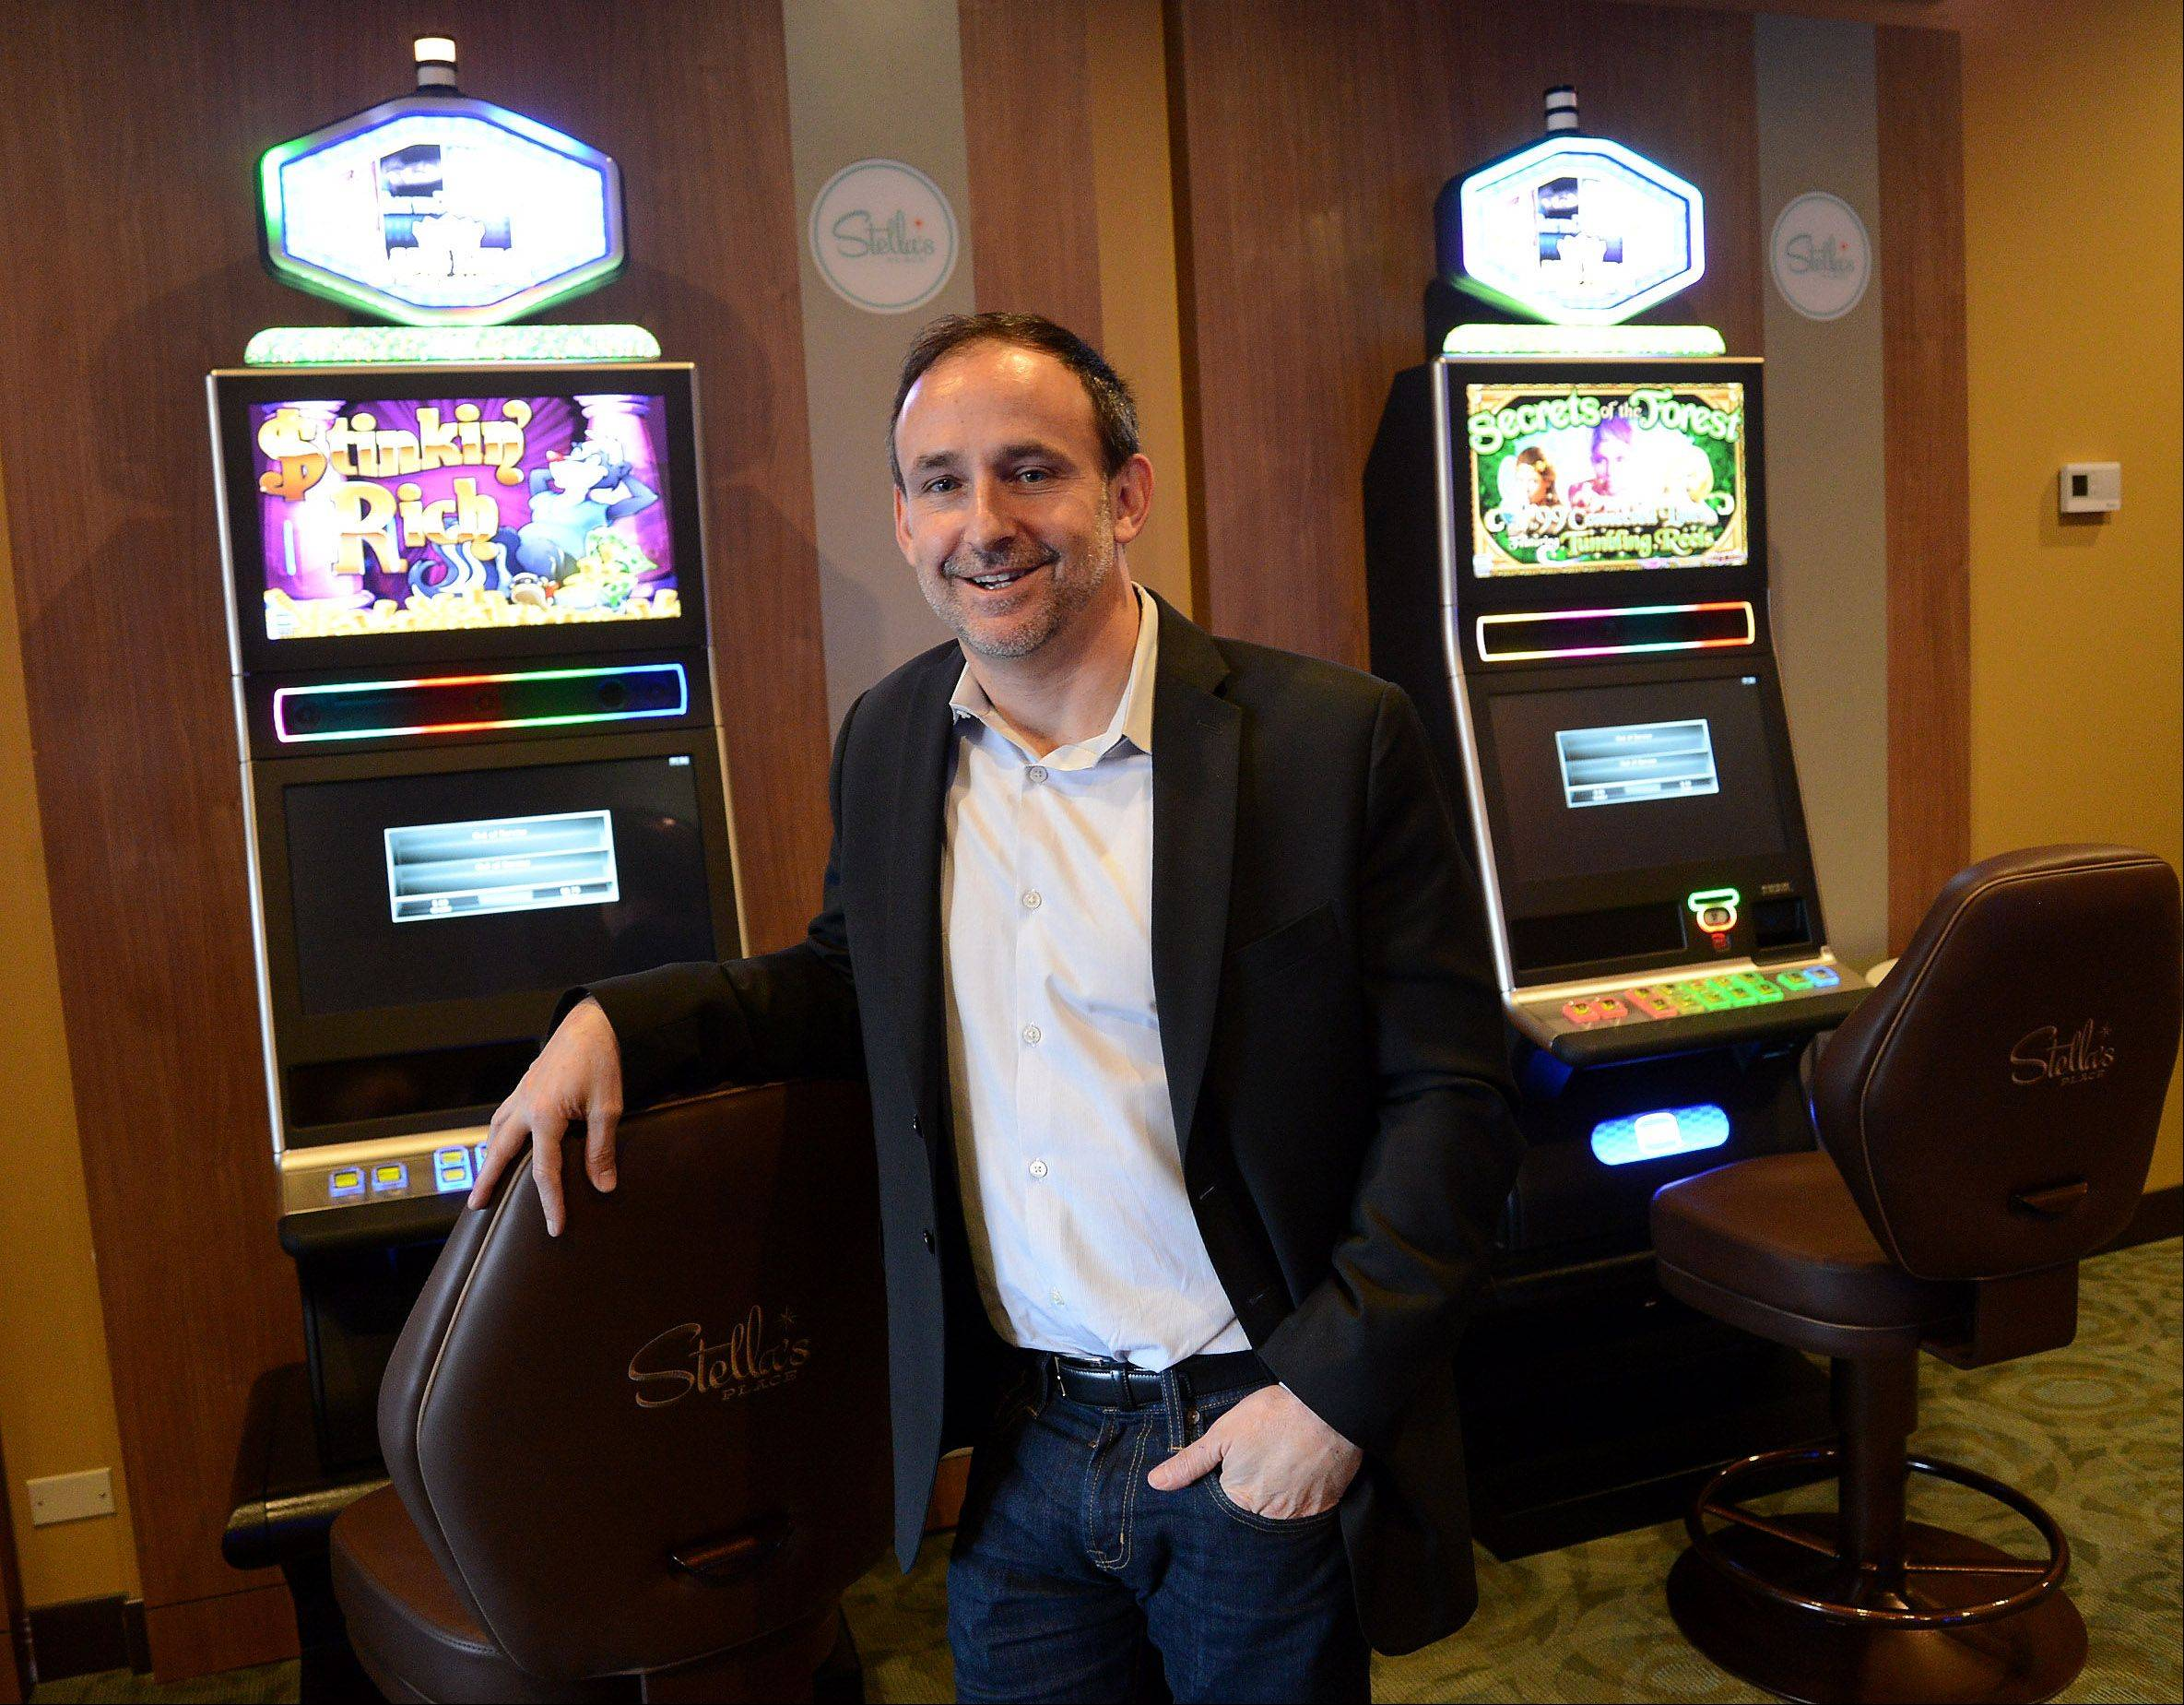 Gary Leff, chief executive officer of Laredo Hospitality, stands by a couple of video gaming machines at Stella's, a new bar that opened in Hoffman Estates Thursday.